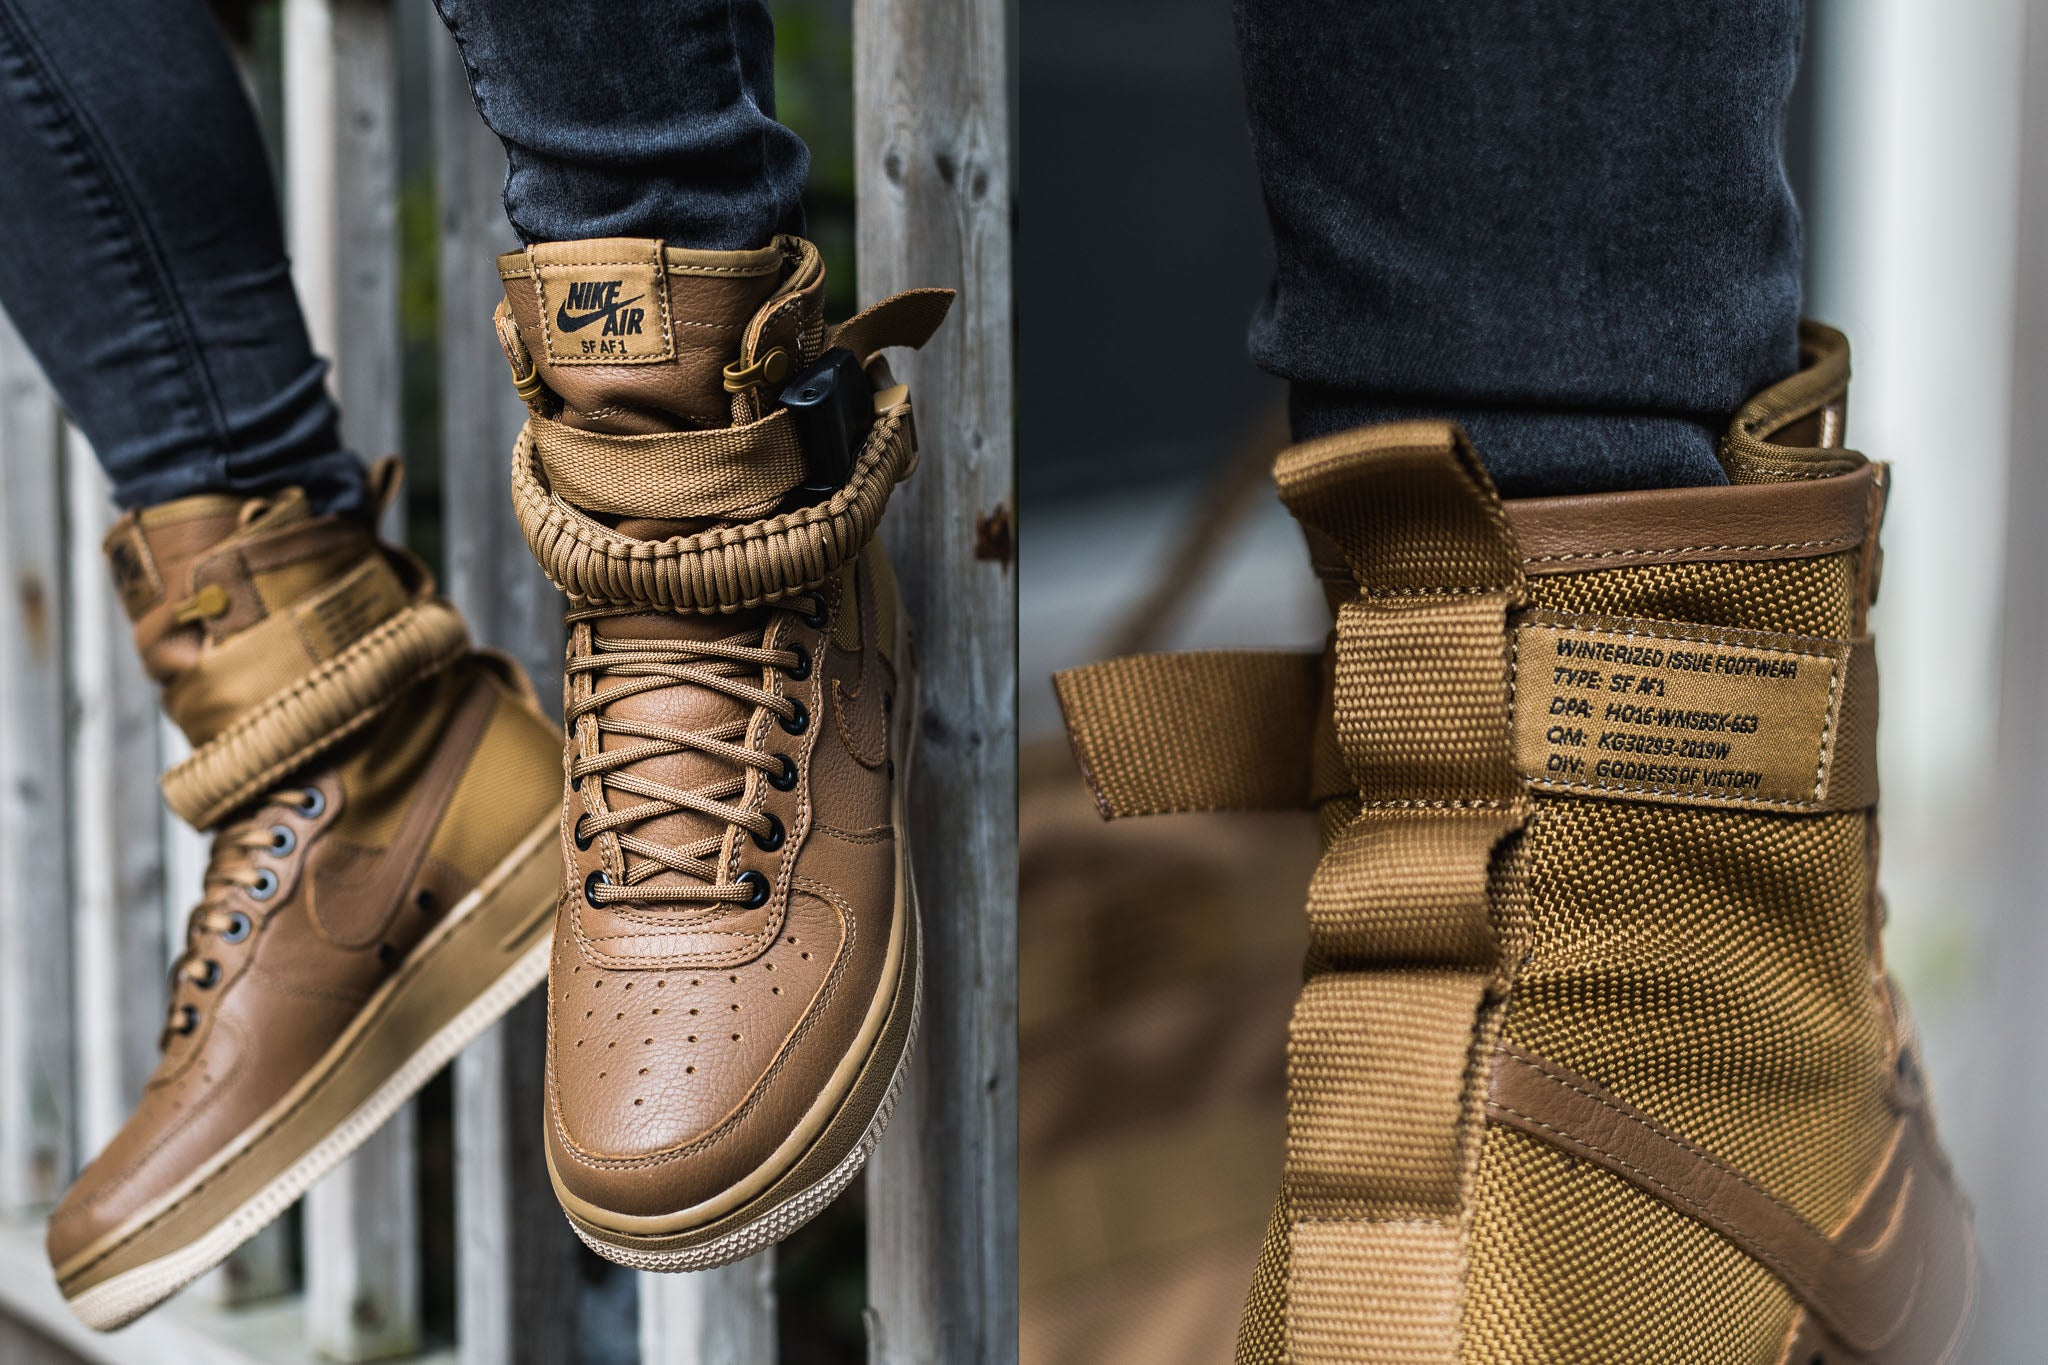 Behind the Innovation. Since its debut in 1982, the Nike Air Force 1 has  continued its long legacy of sports footwear ...